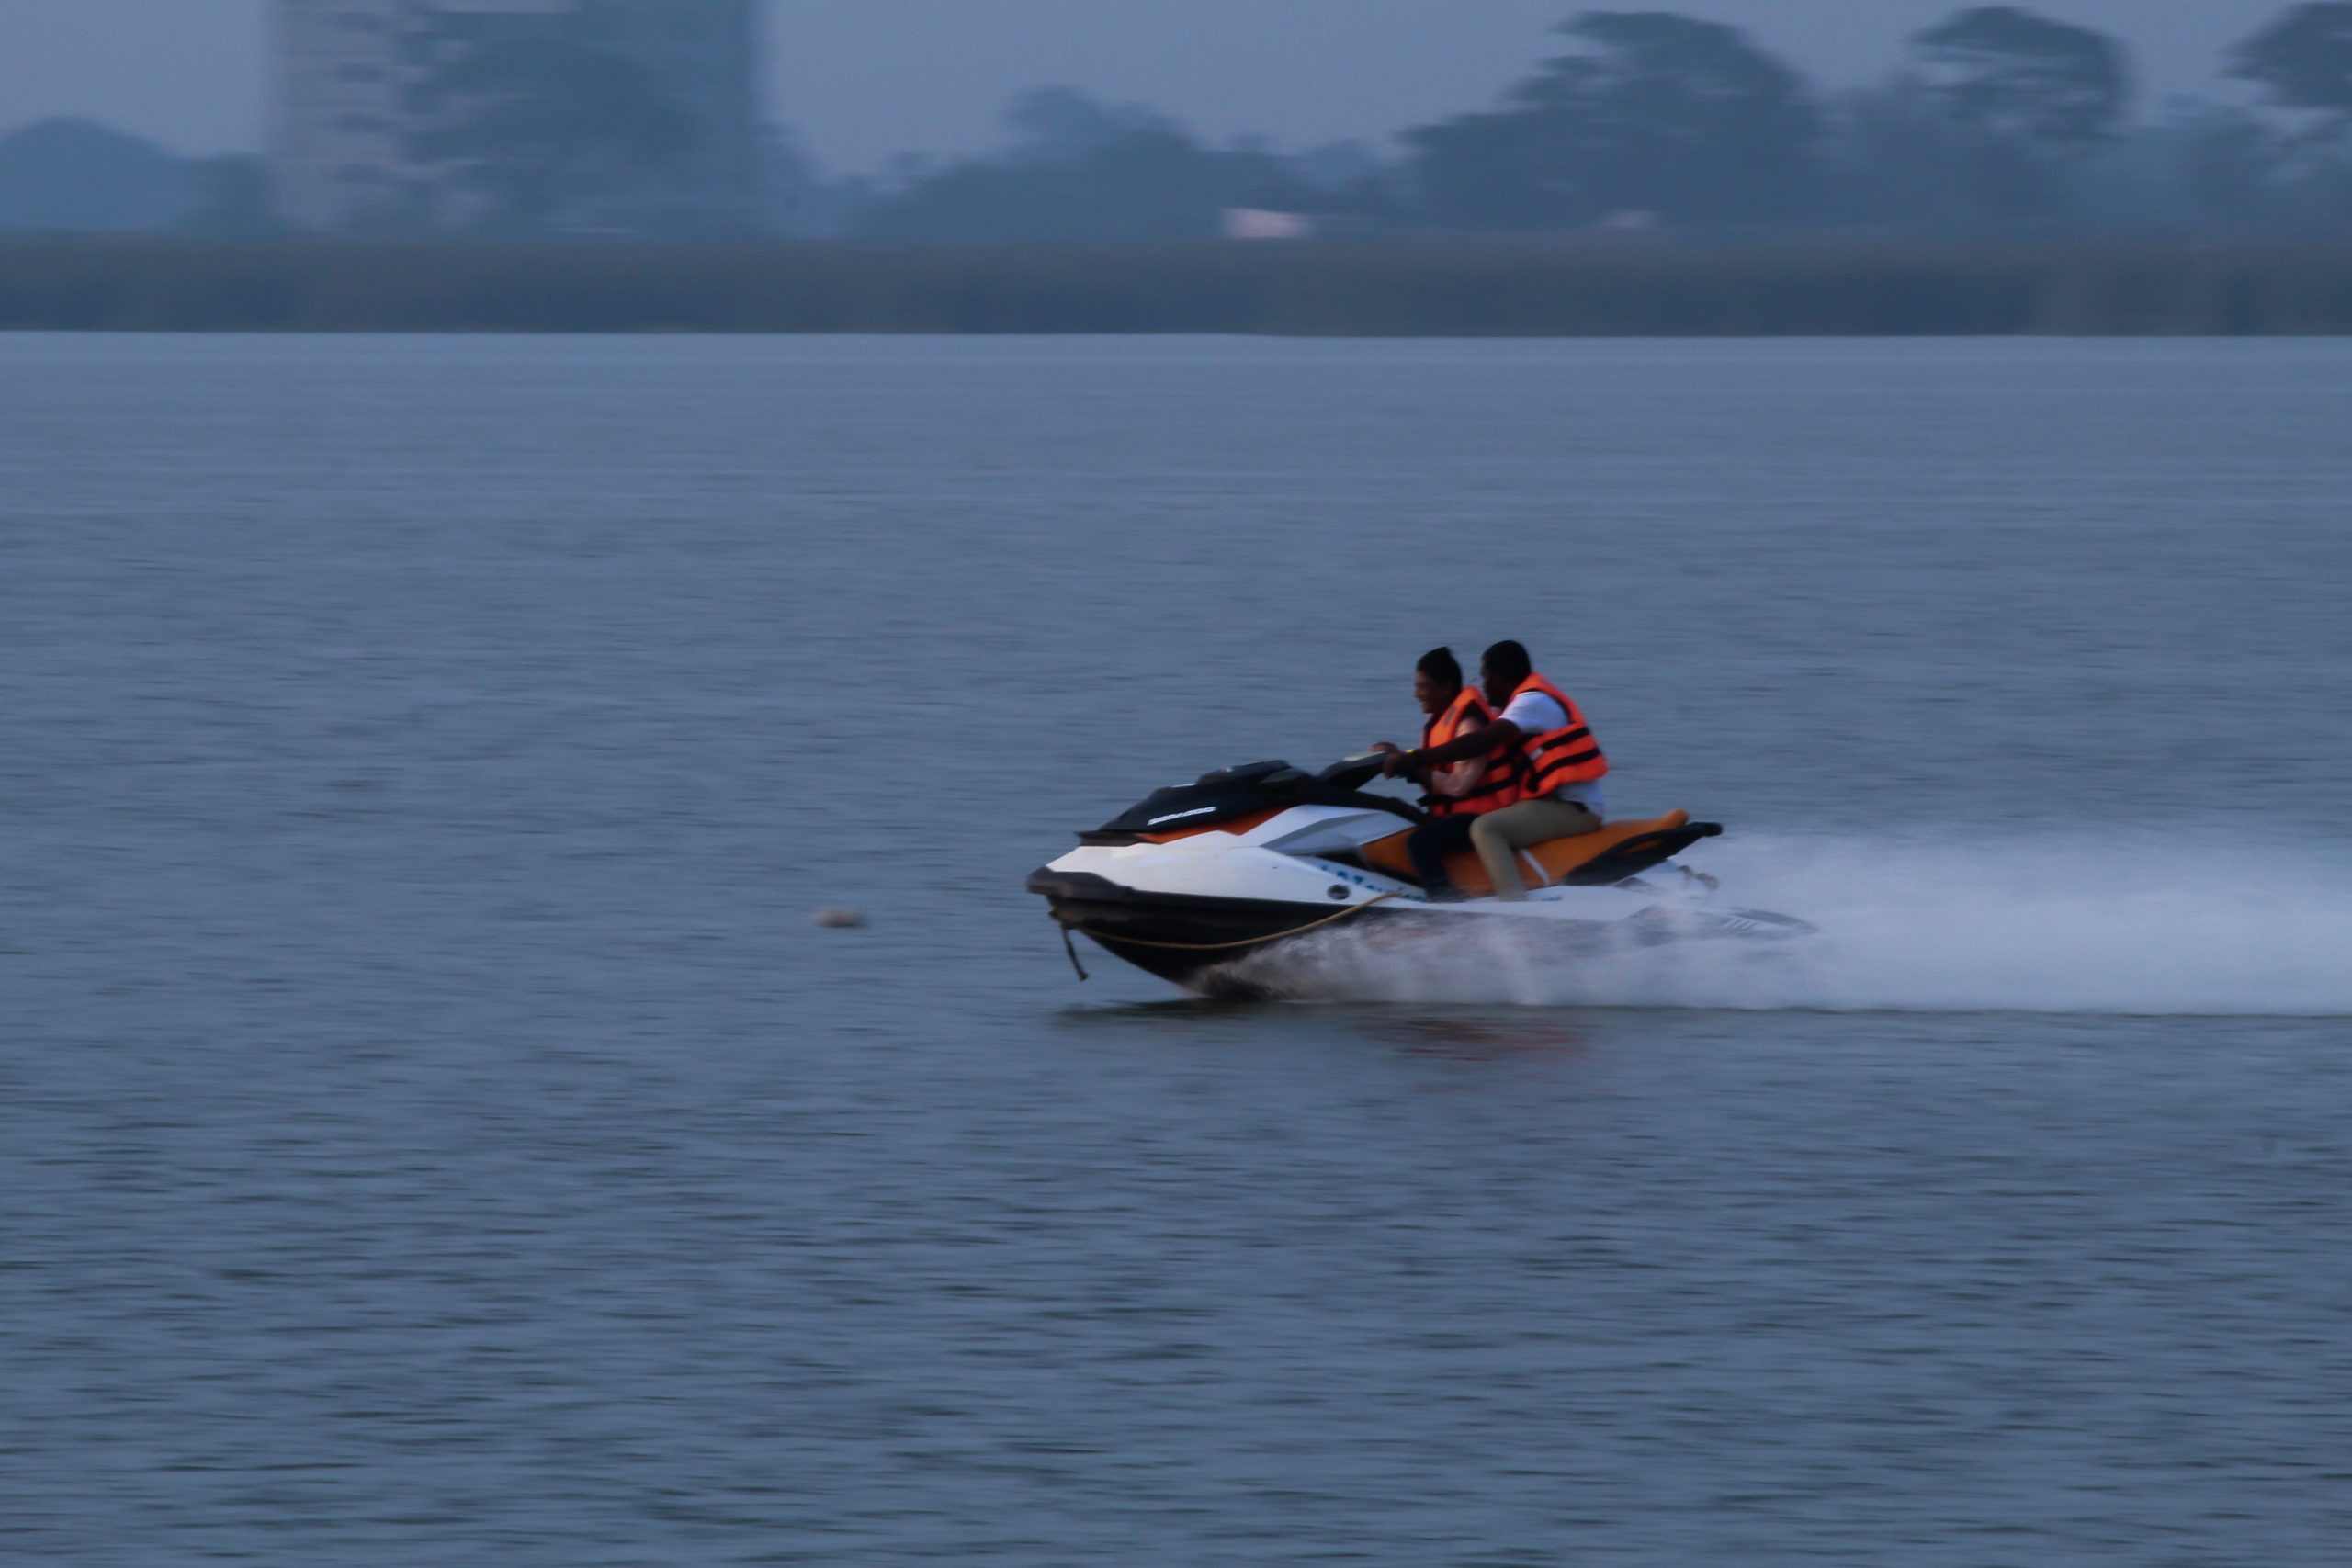 Men driving a speed boat